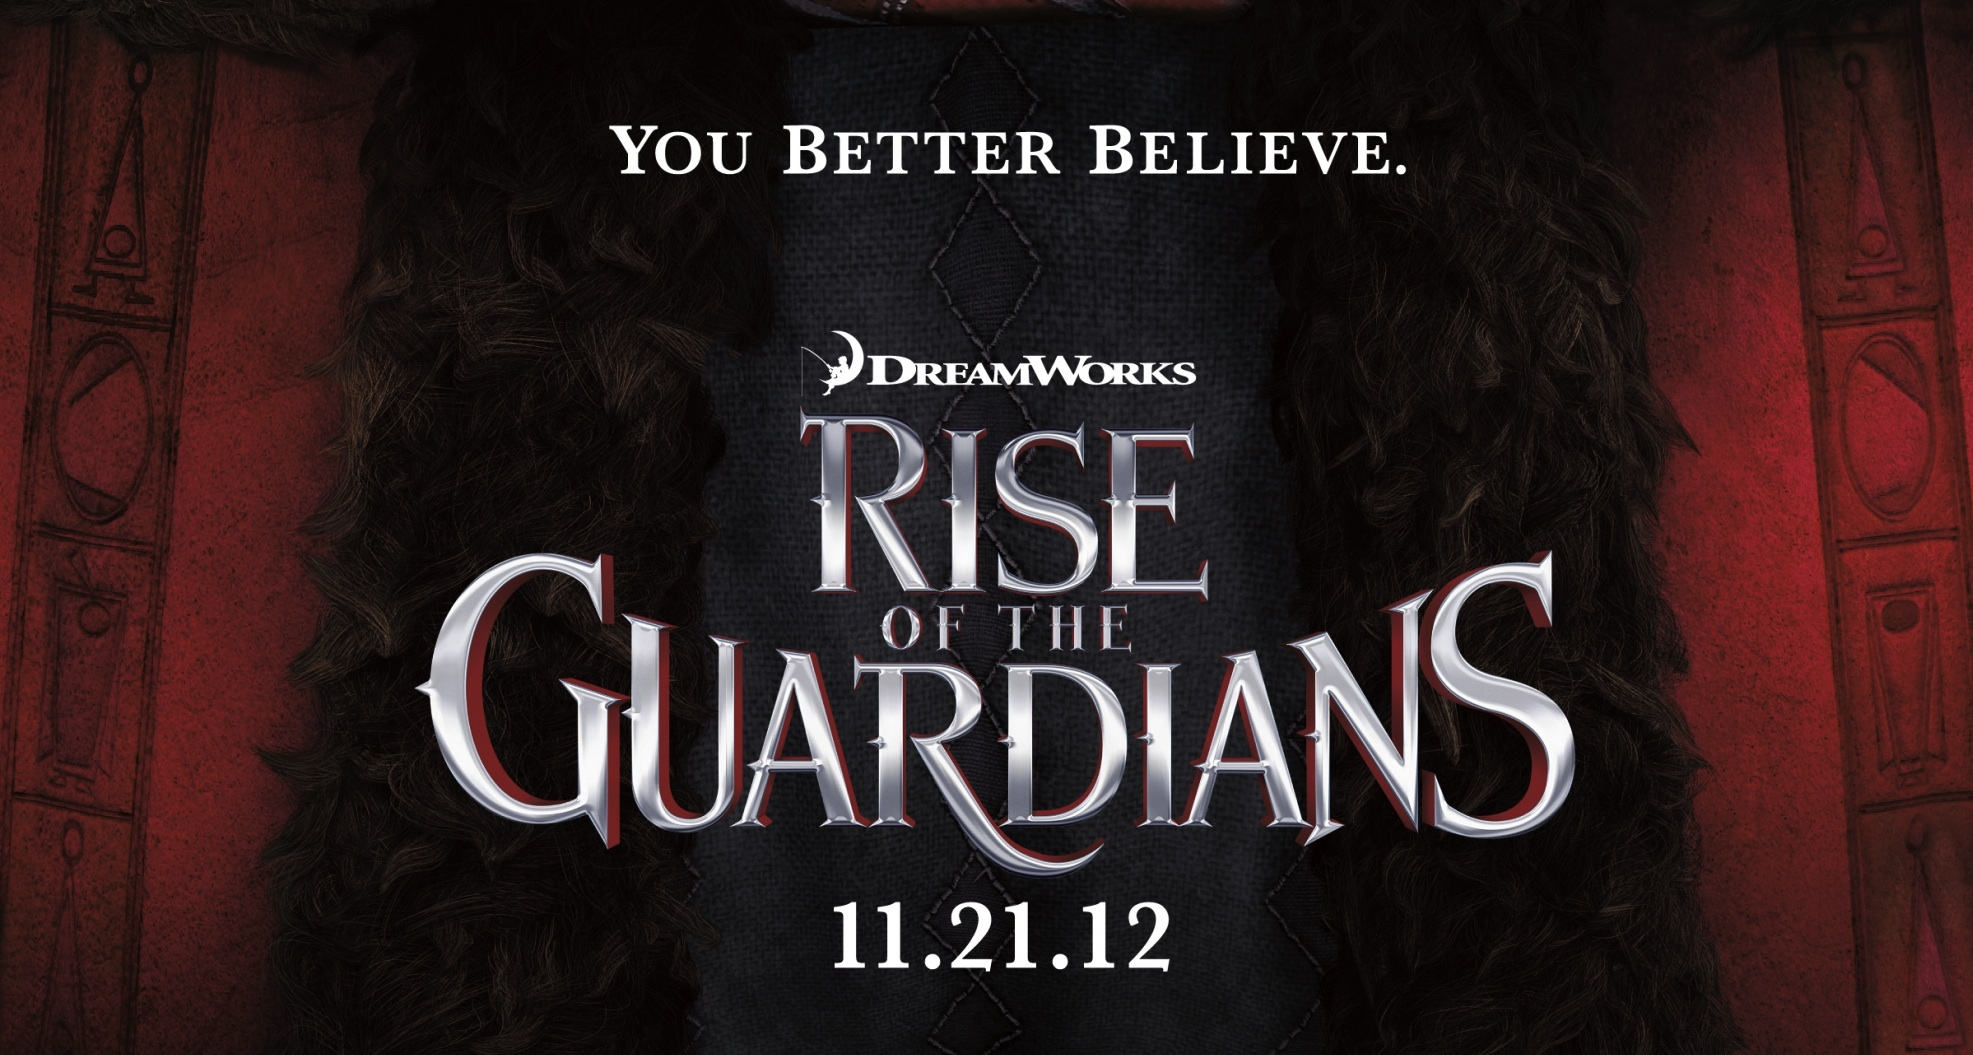 DreamWorks Animation SKG Presents RISE OF THE GUARDIANS